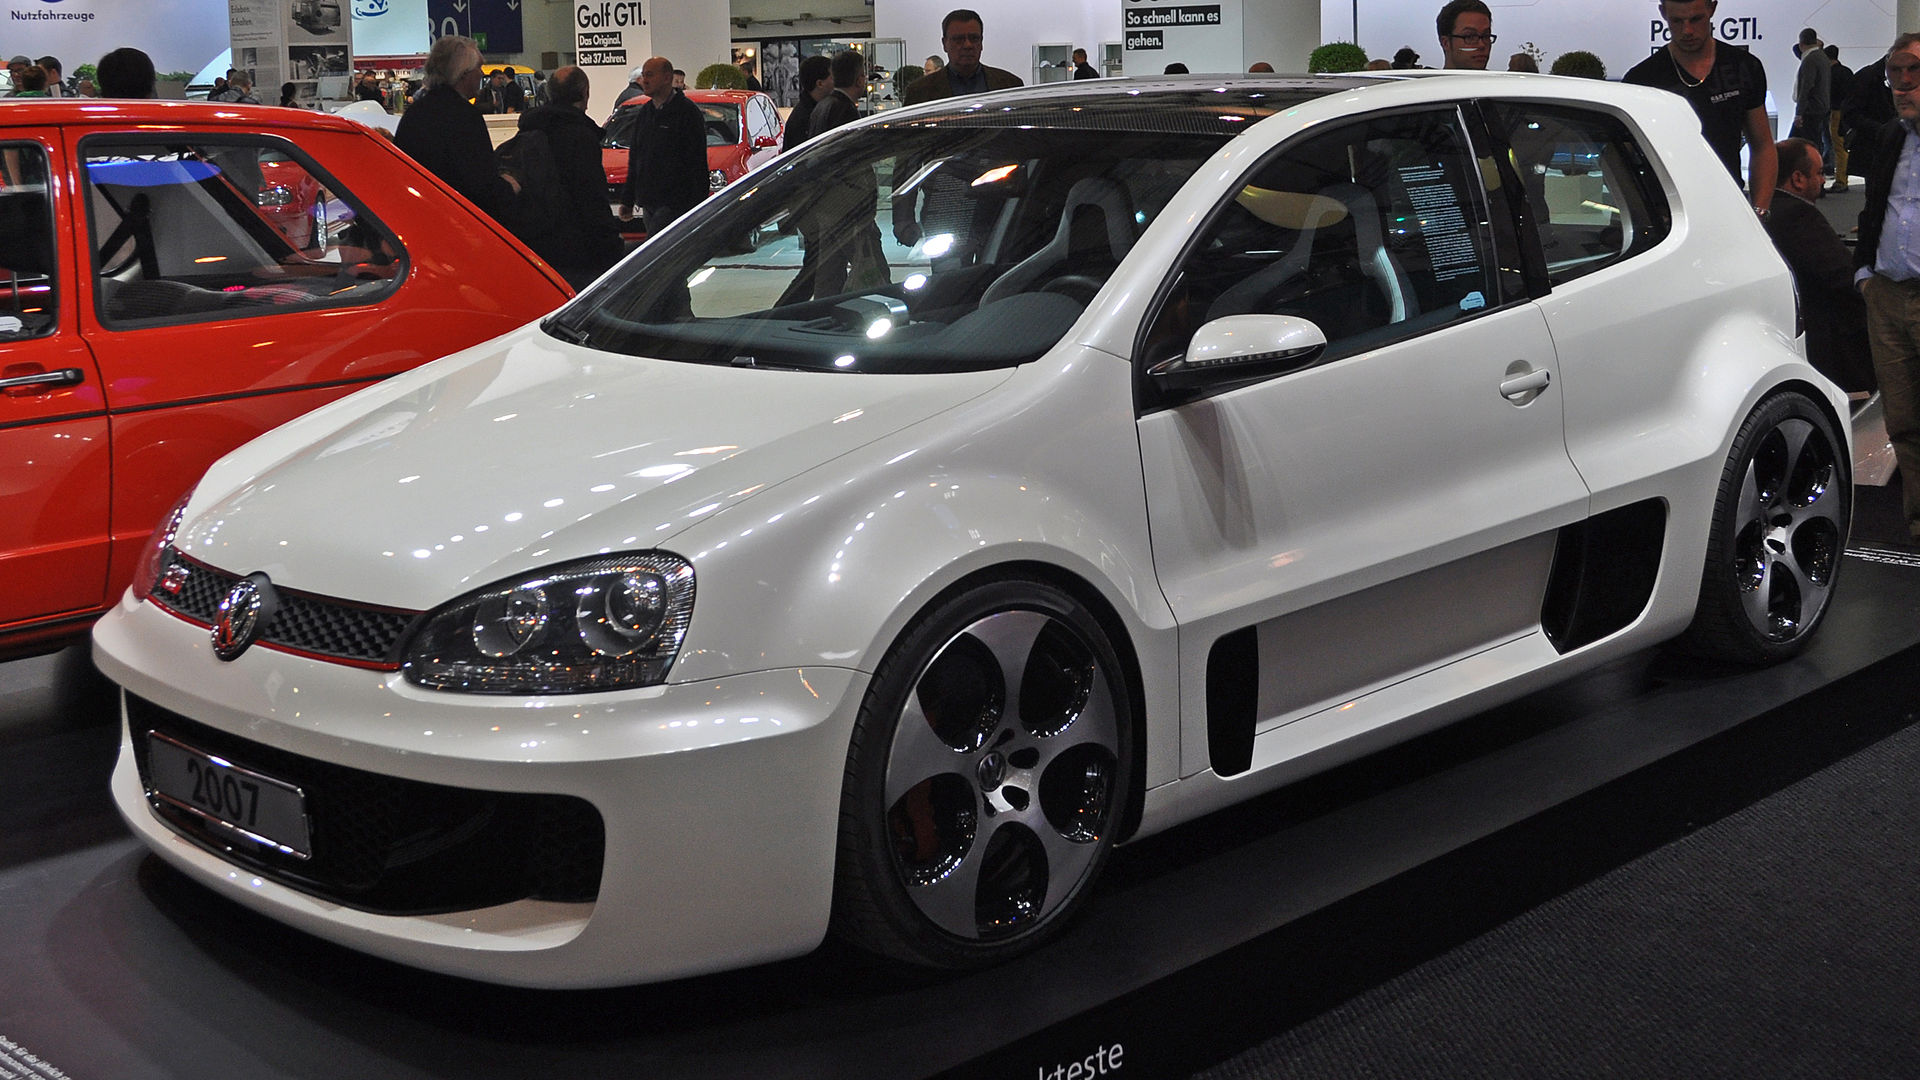 volkswagen golf gti w12 650 wikipedia wolna encyklopedia. Black Bedroom Furniture Sets. Home Design Ideas